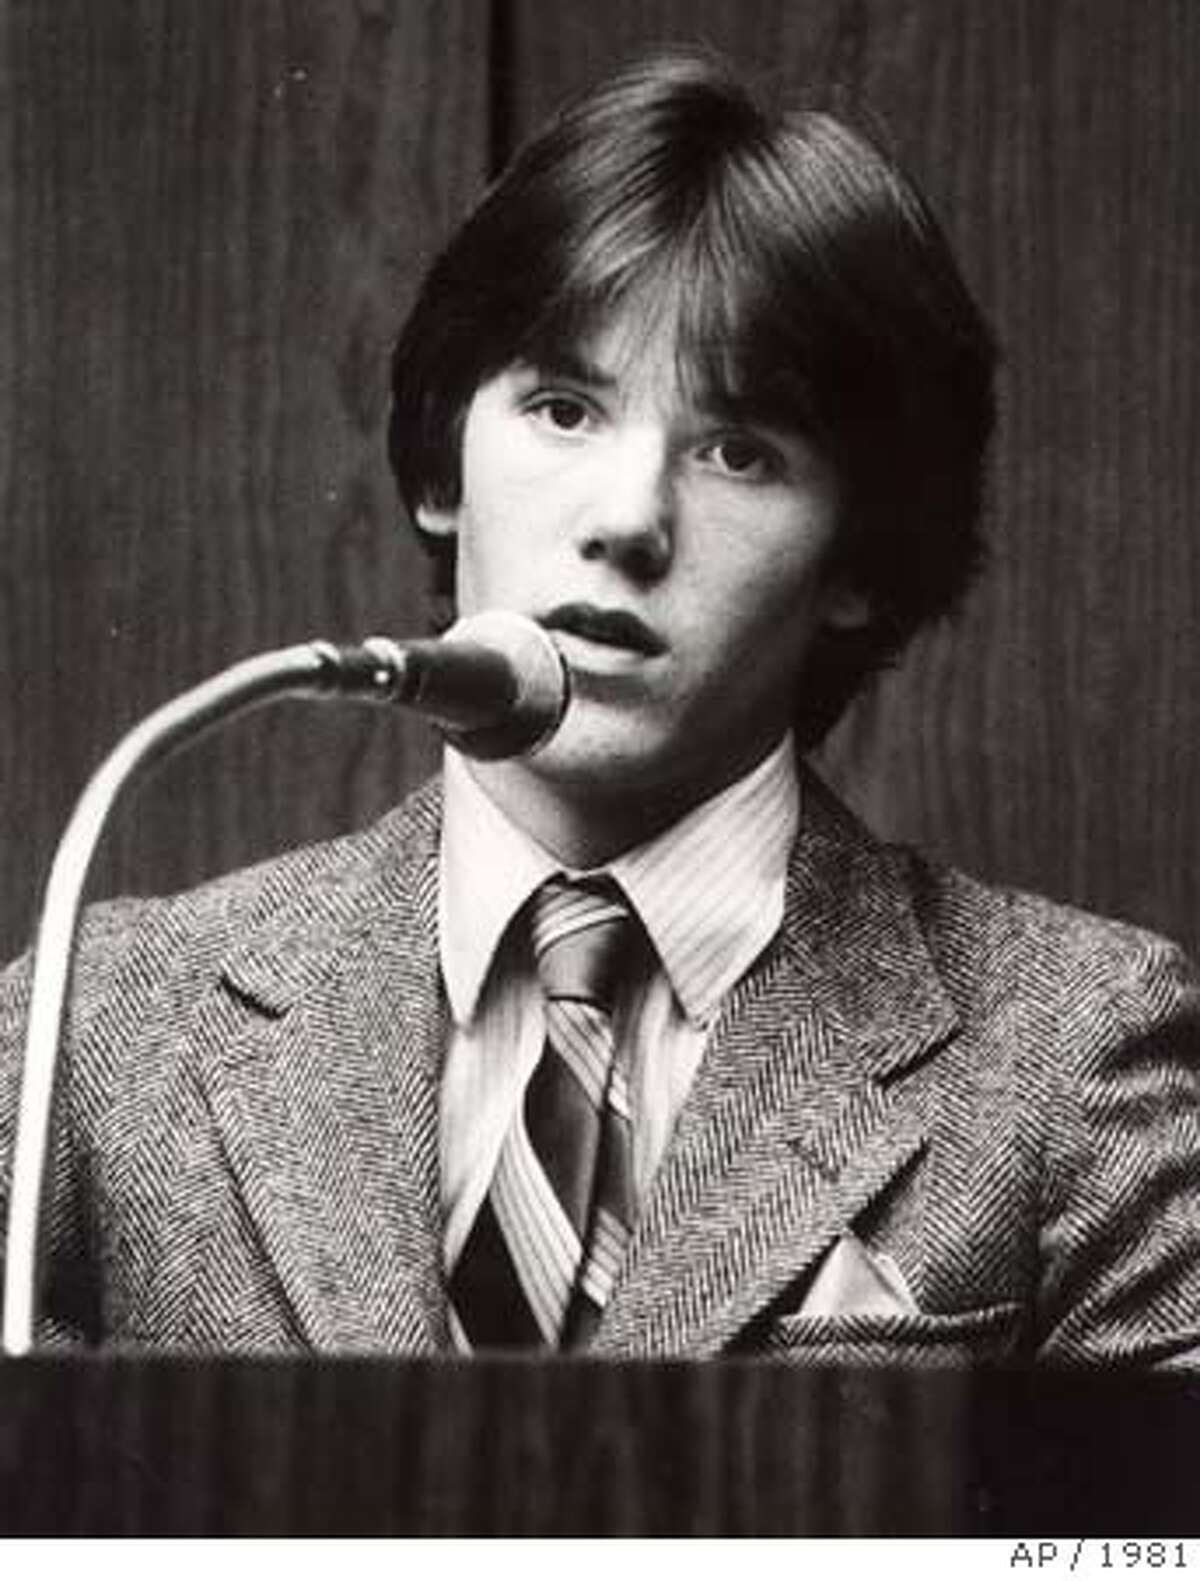 Steven Stayner testifies in 1981 about his abduction in 1972 by Kenneth Parnell and his seven years in captivity. Stayner died in a motorcycle accident in 1989.